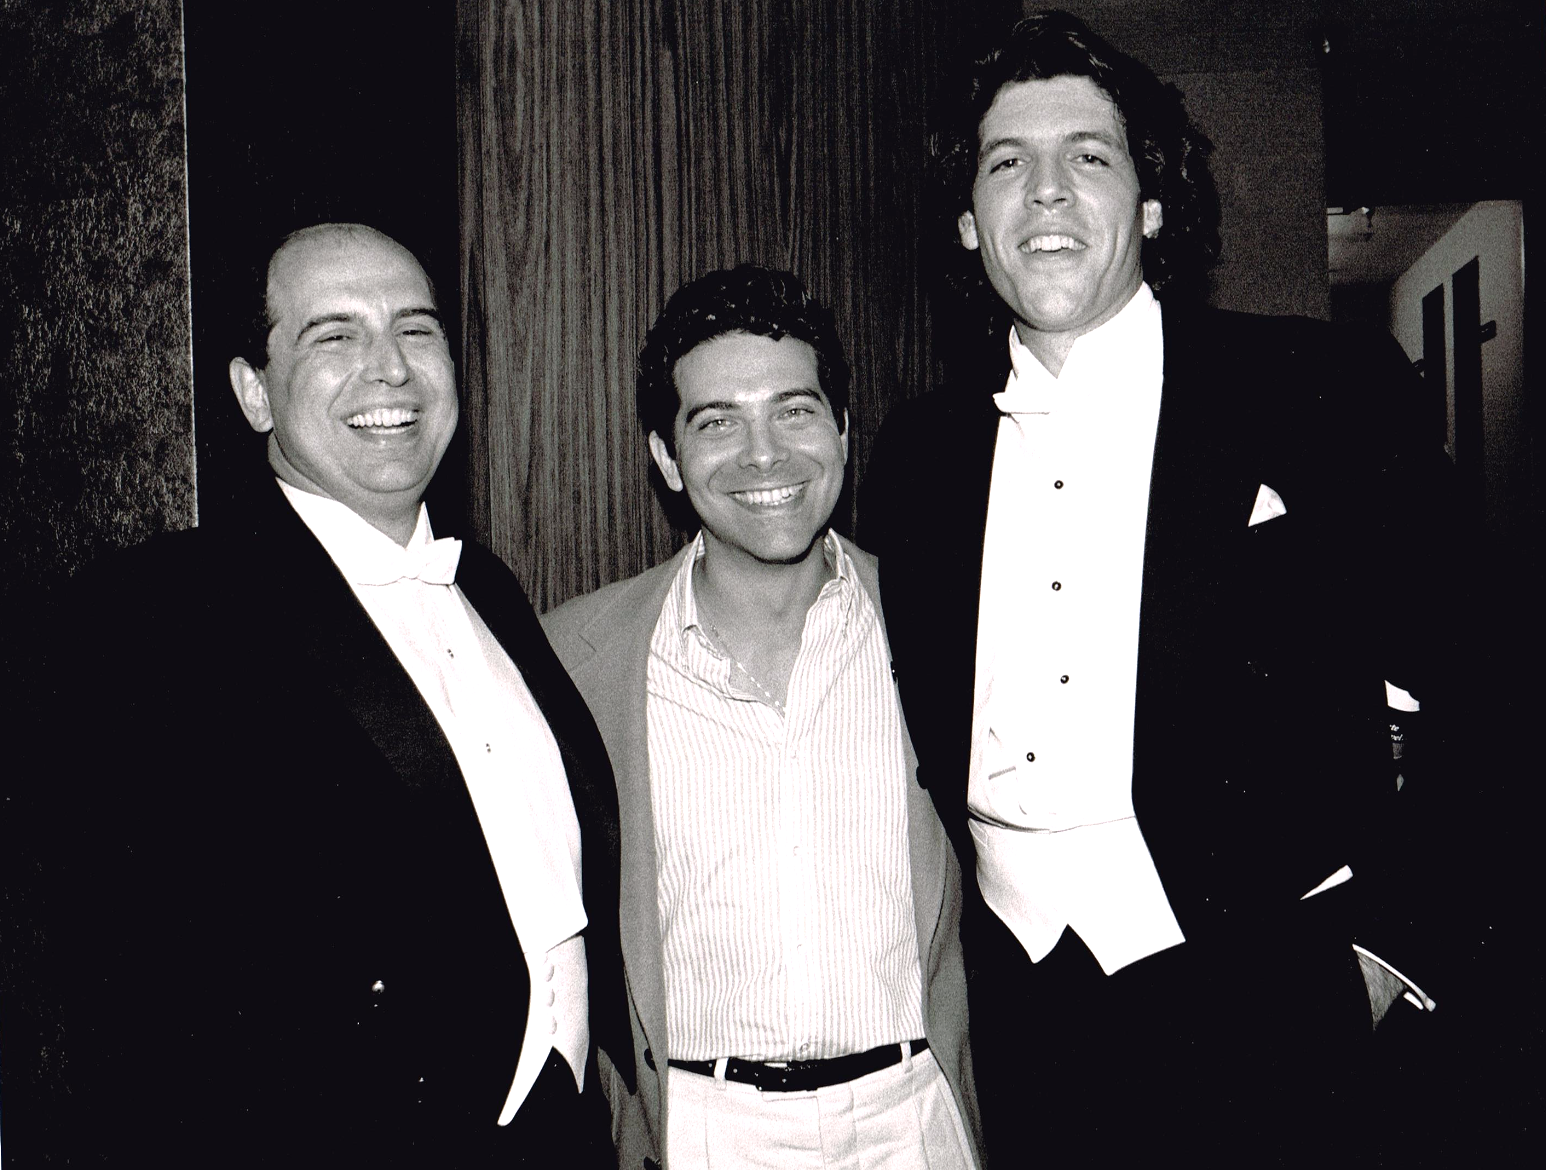 w/Michael Feinstein & Thomas Hampson